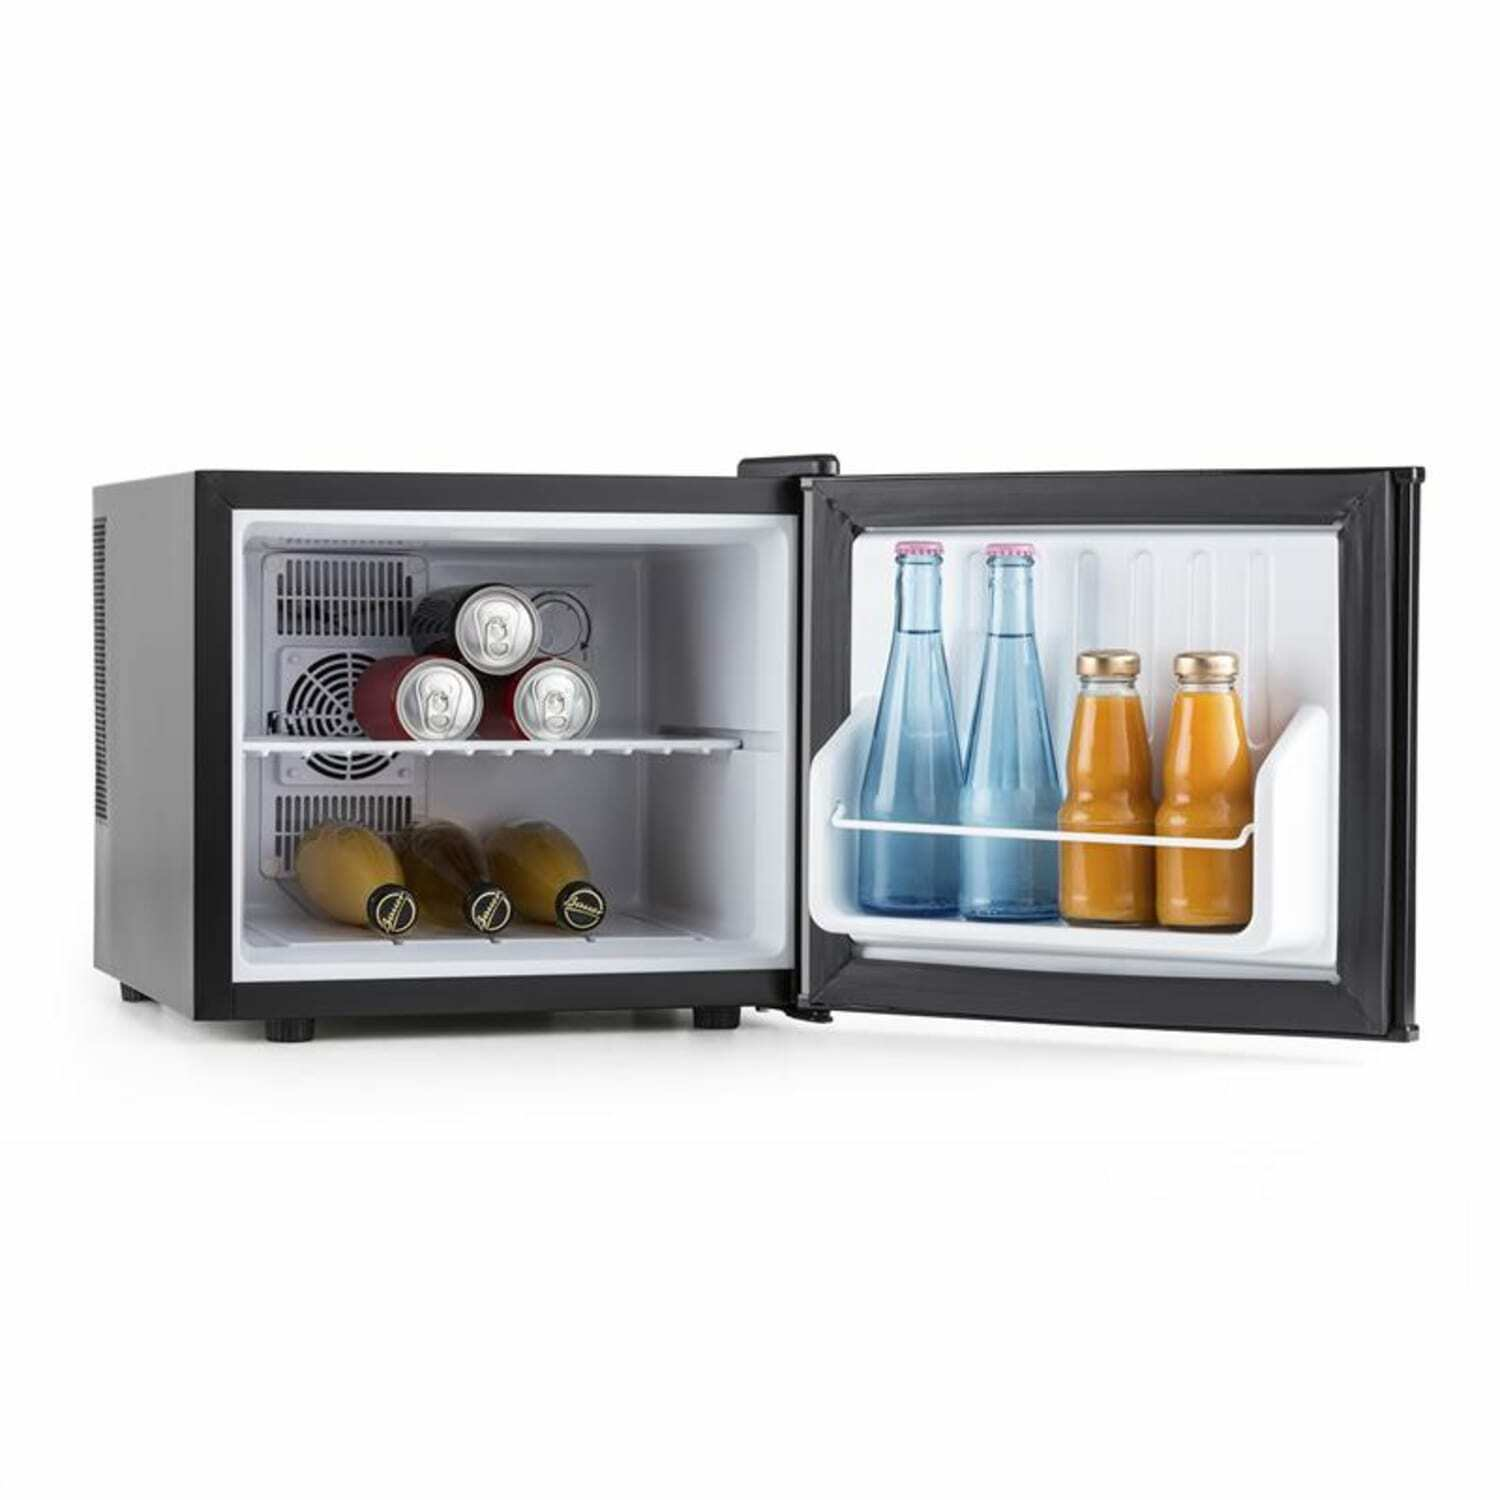 mini frigo bar frigorifero piccolo compatto bevande acciaio inox classe a 17l eur 119 99. Black Bedroom Furniture Sets. Home Design Ideas